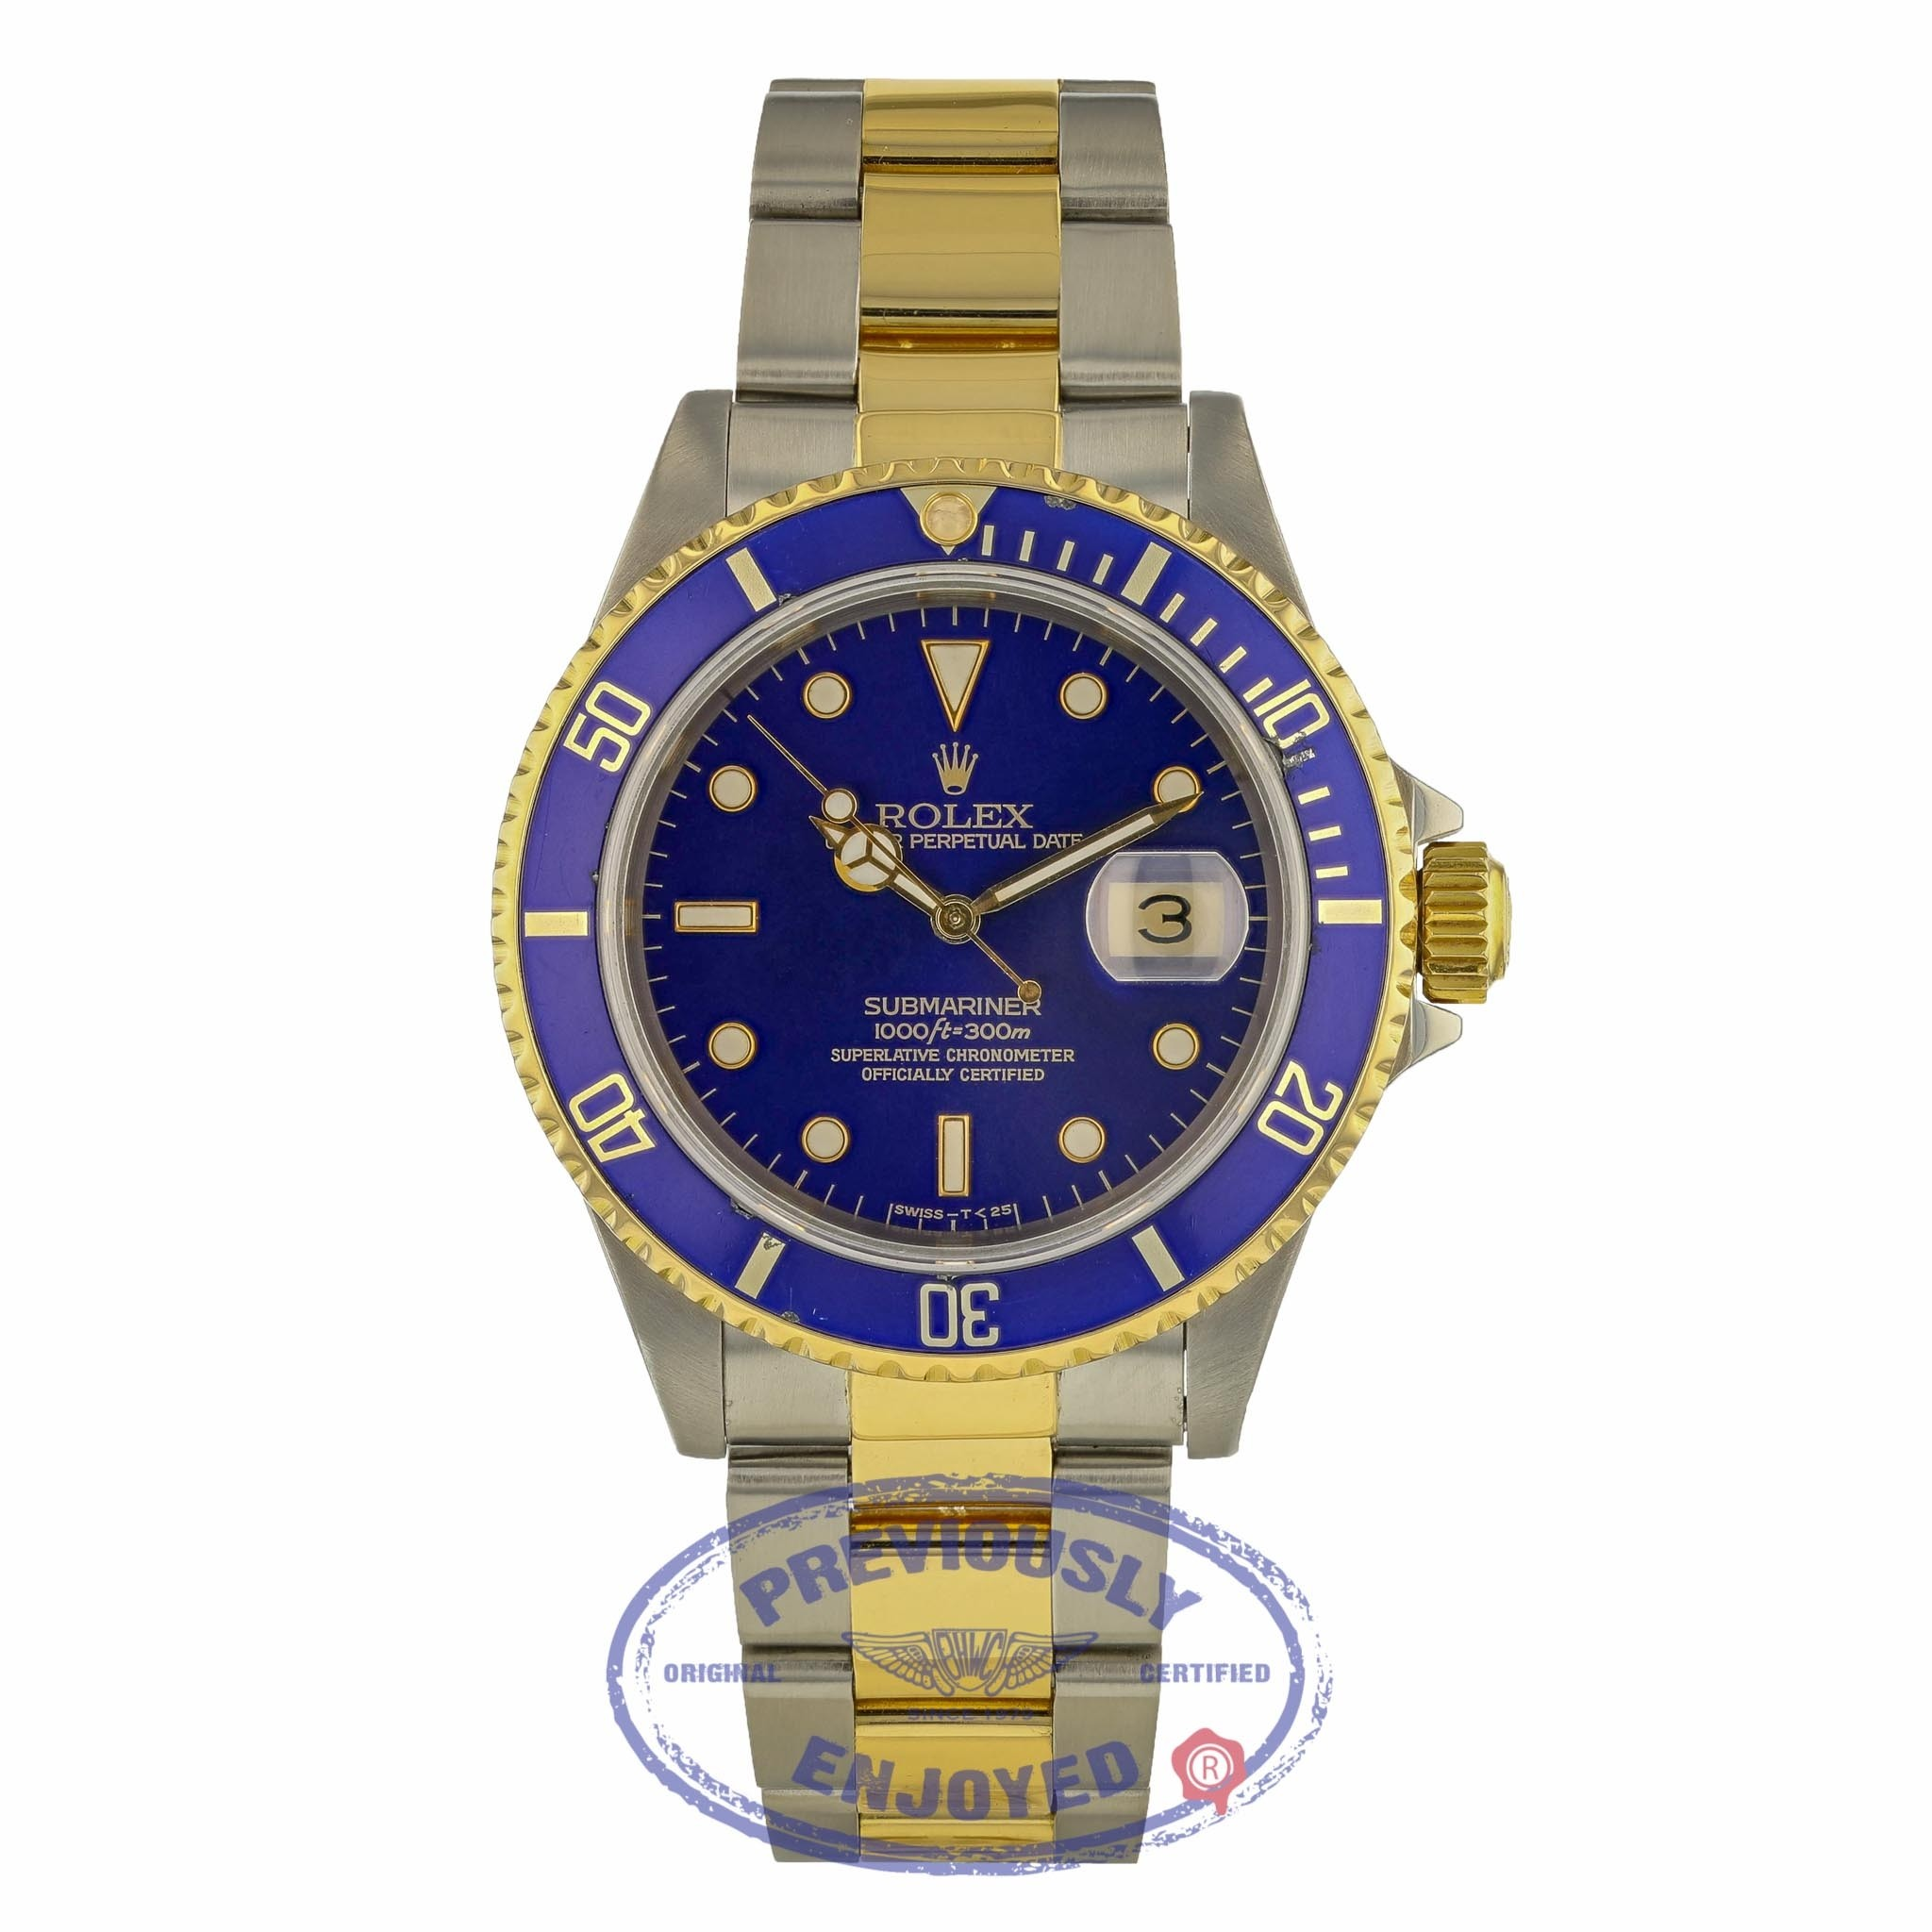 Rolex Classic Submariner 40mm Steel and Yellow Gold Blue Dial 16613 3A1NW9